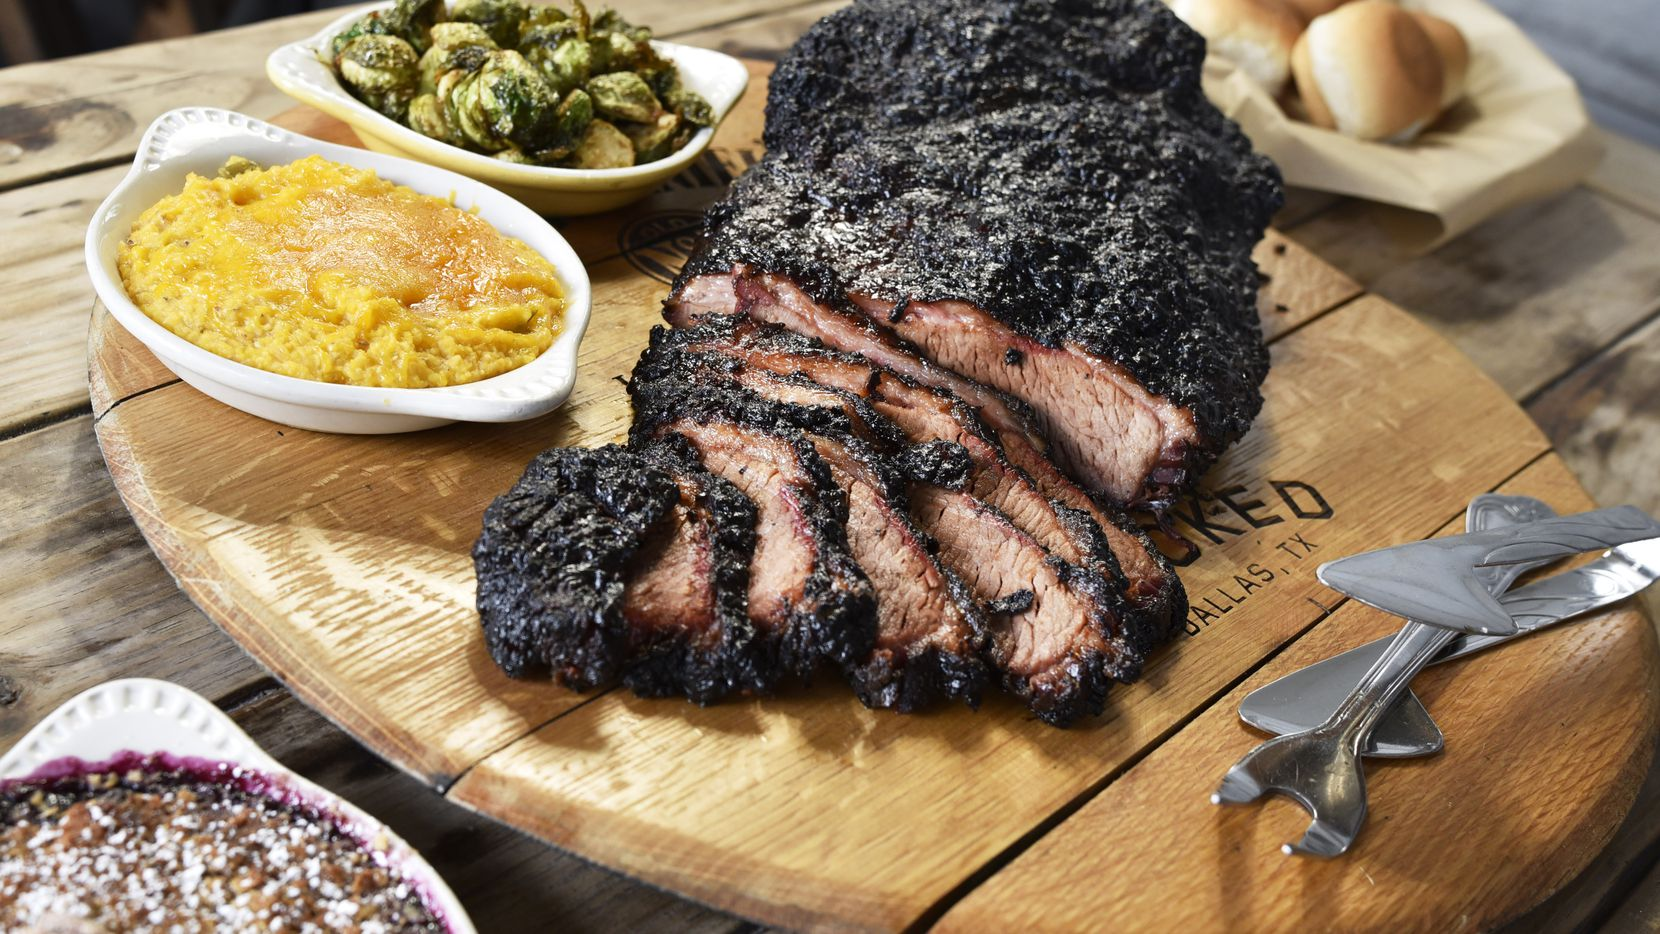 Restaurants Hotels In Fort Worth For Christmas Dinner 2020 This holiday season, order out or dine in at these Dallas Fort